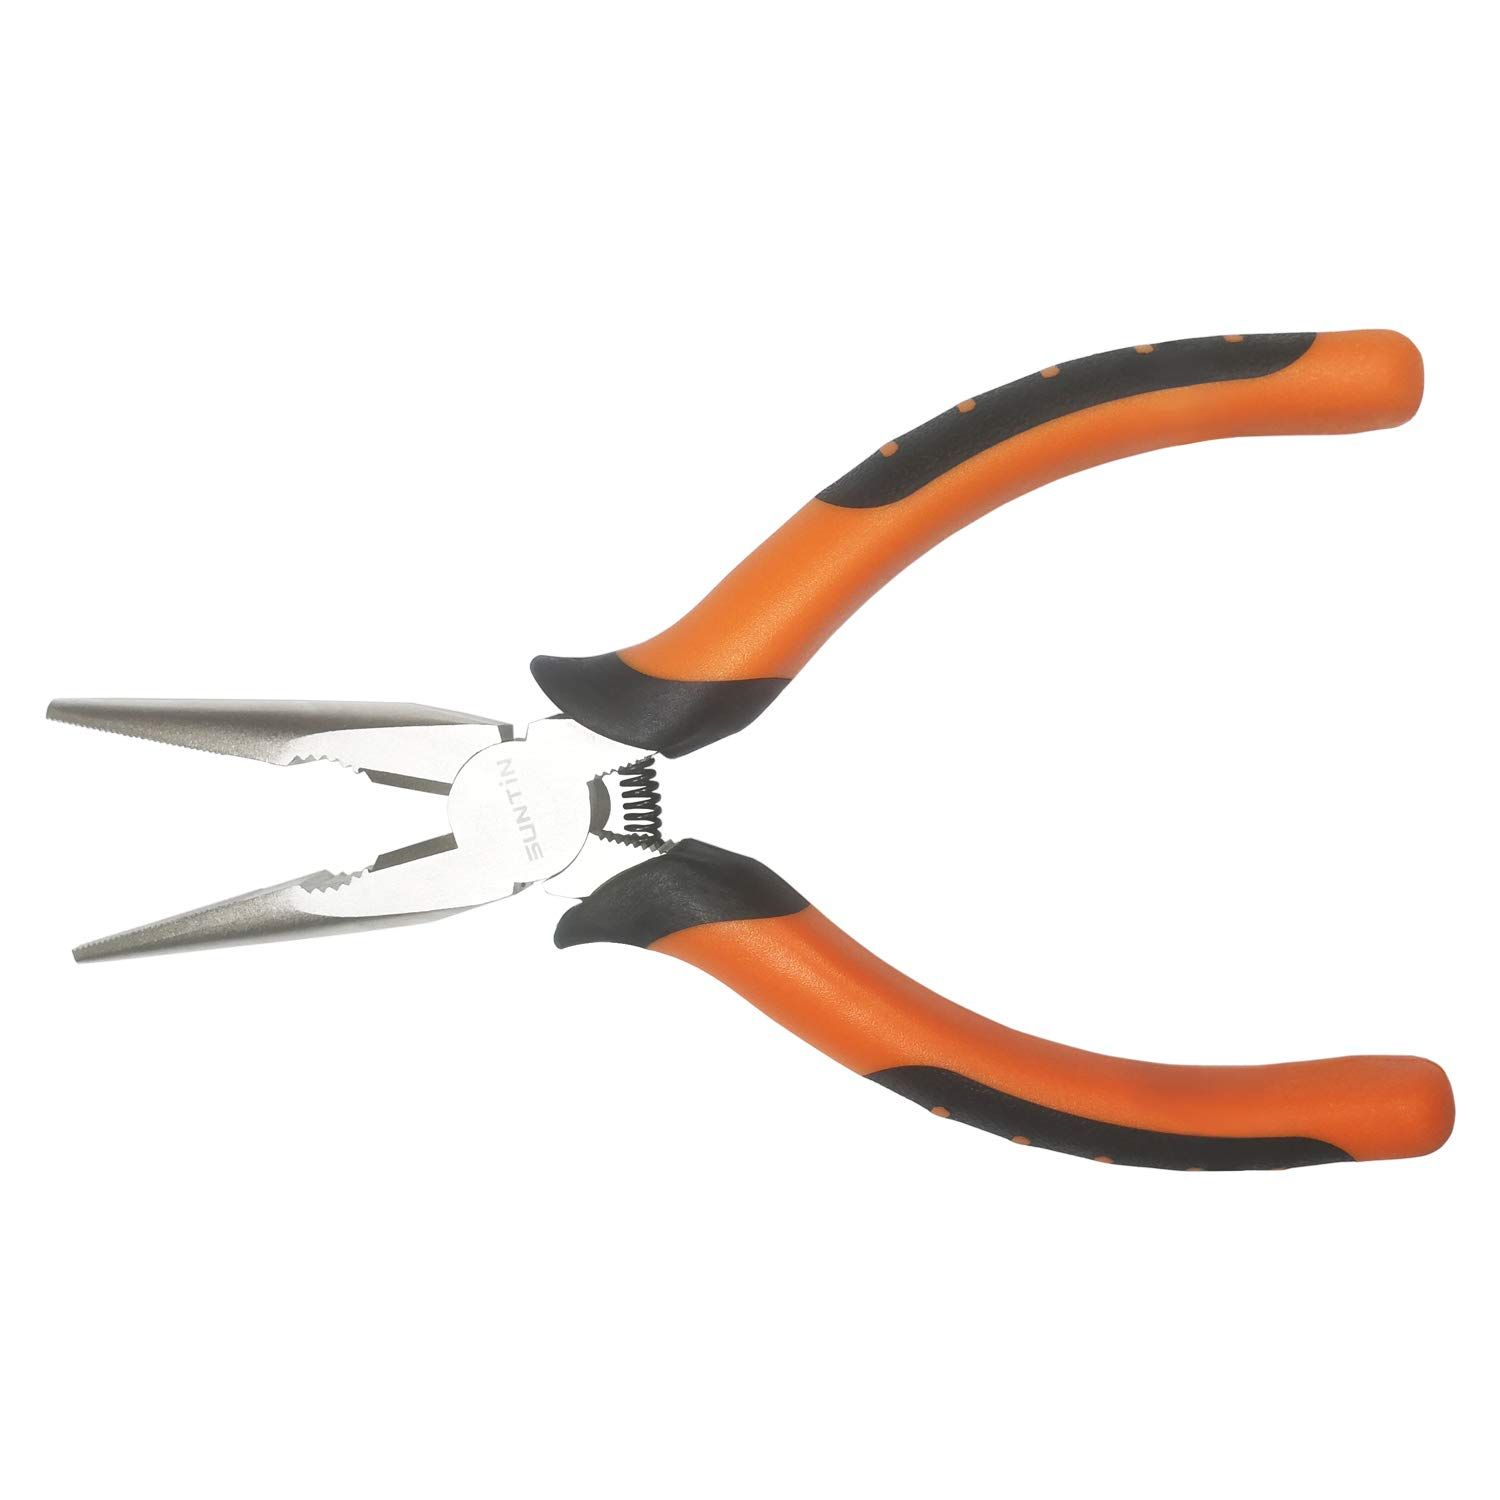 Long Nose Pliers 6 Inch Multifunction Needle Nose Pliers Electroplated Nickel Ad Pliers Spon Inch Long Nose Electroplating Pliers Jewelry Pliers